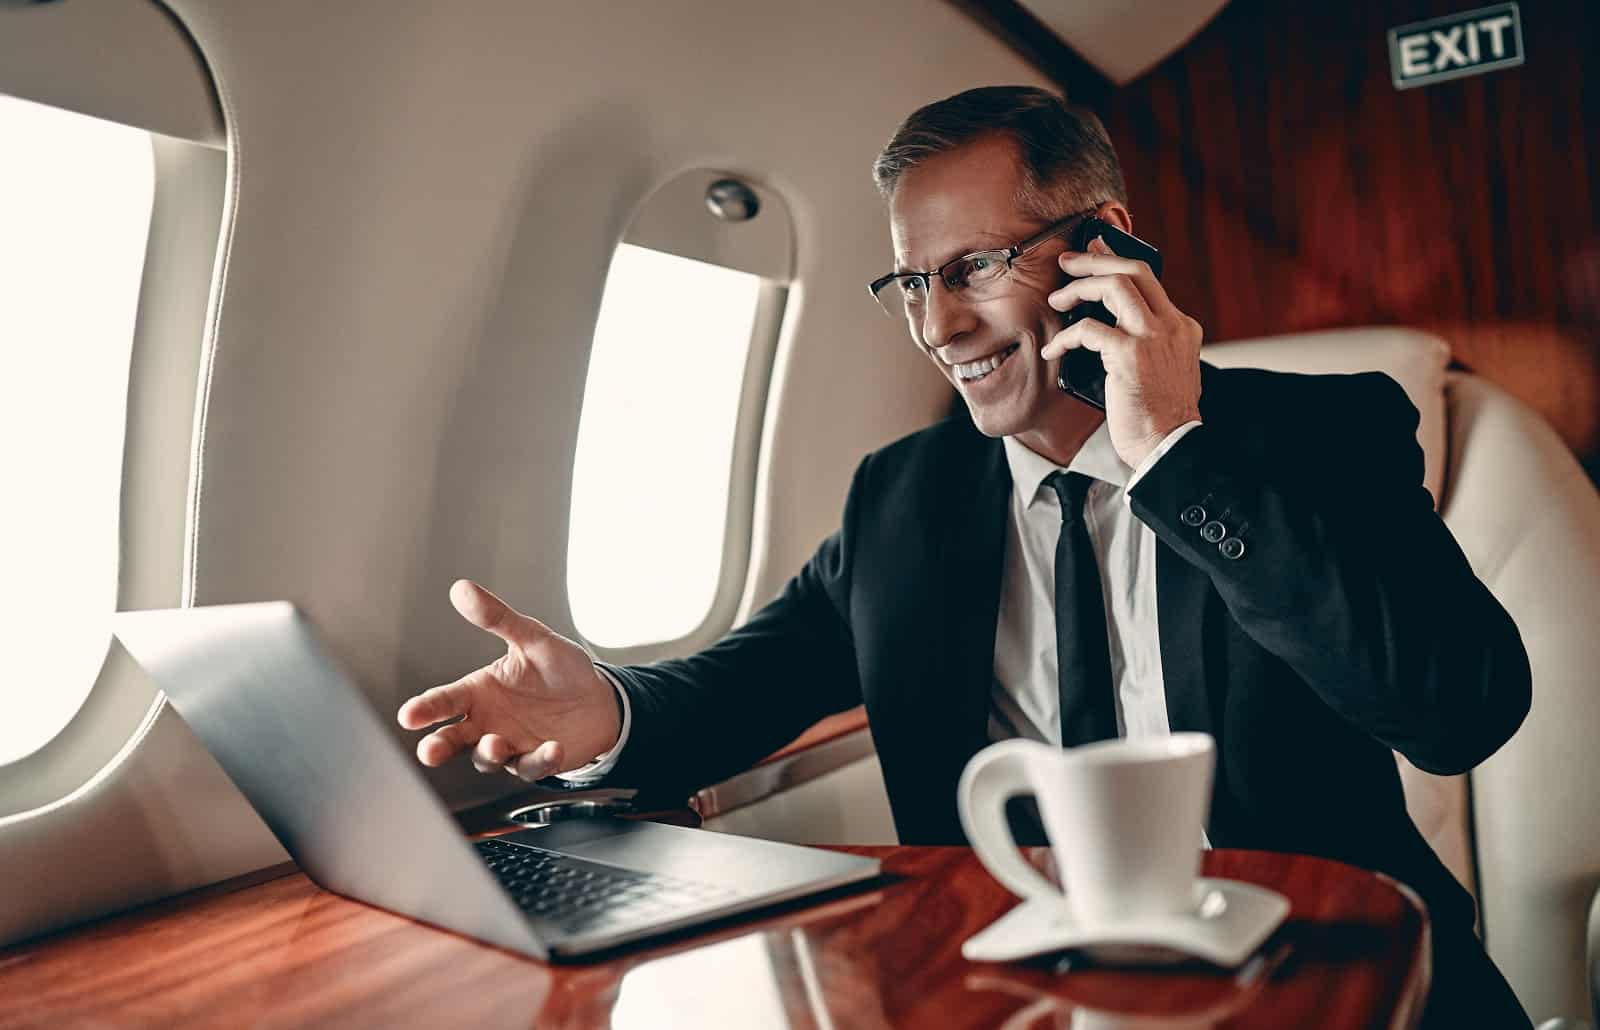 What is a chartered flight: A smiling business man gestures at his laptop on a private plane